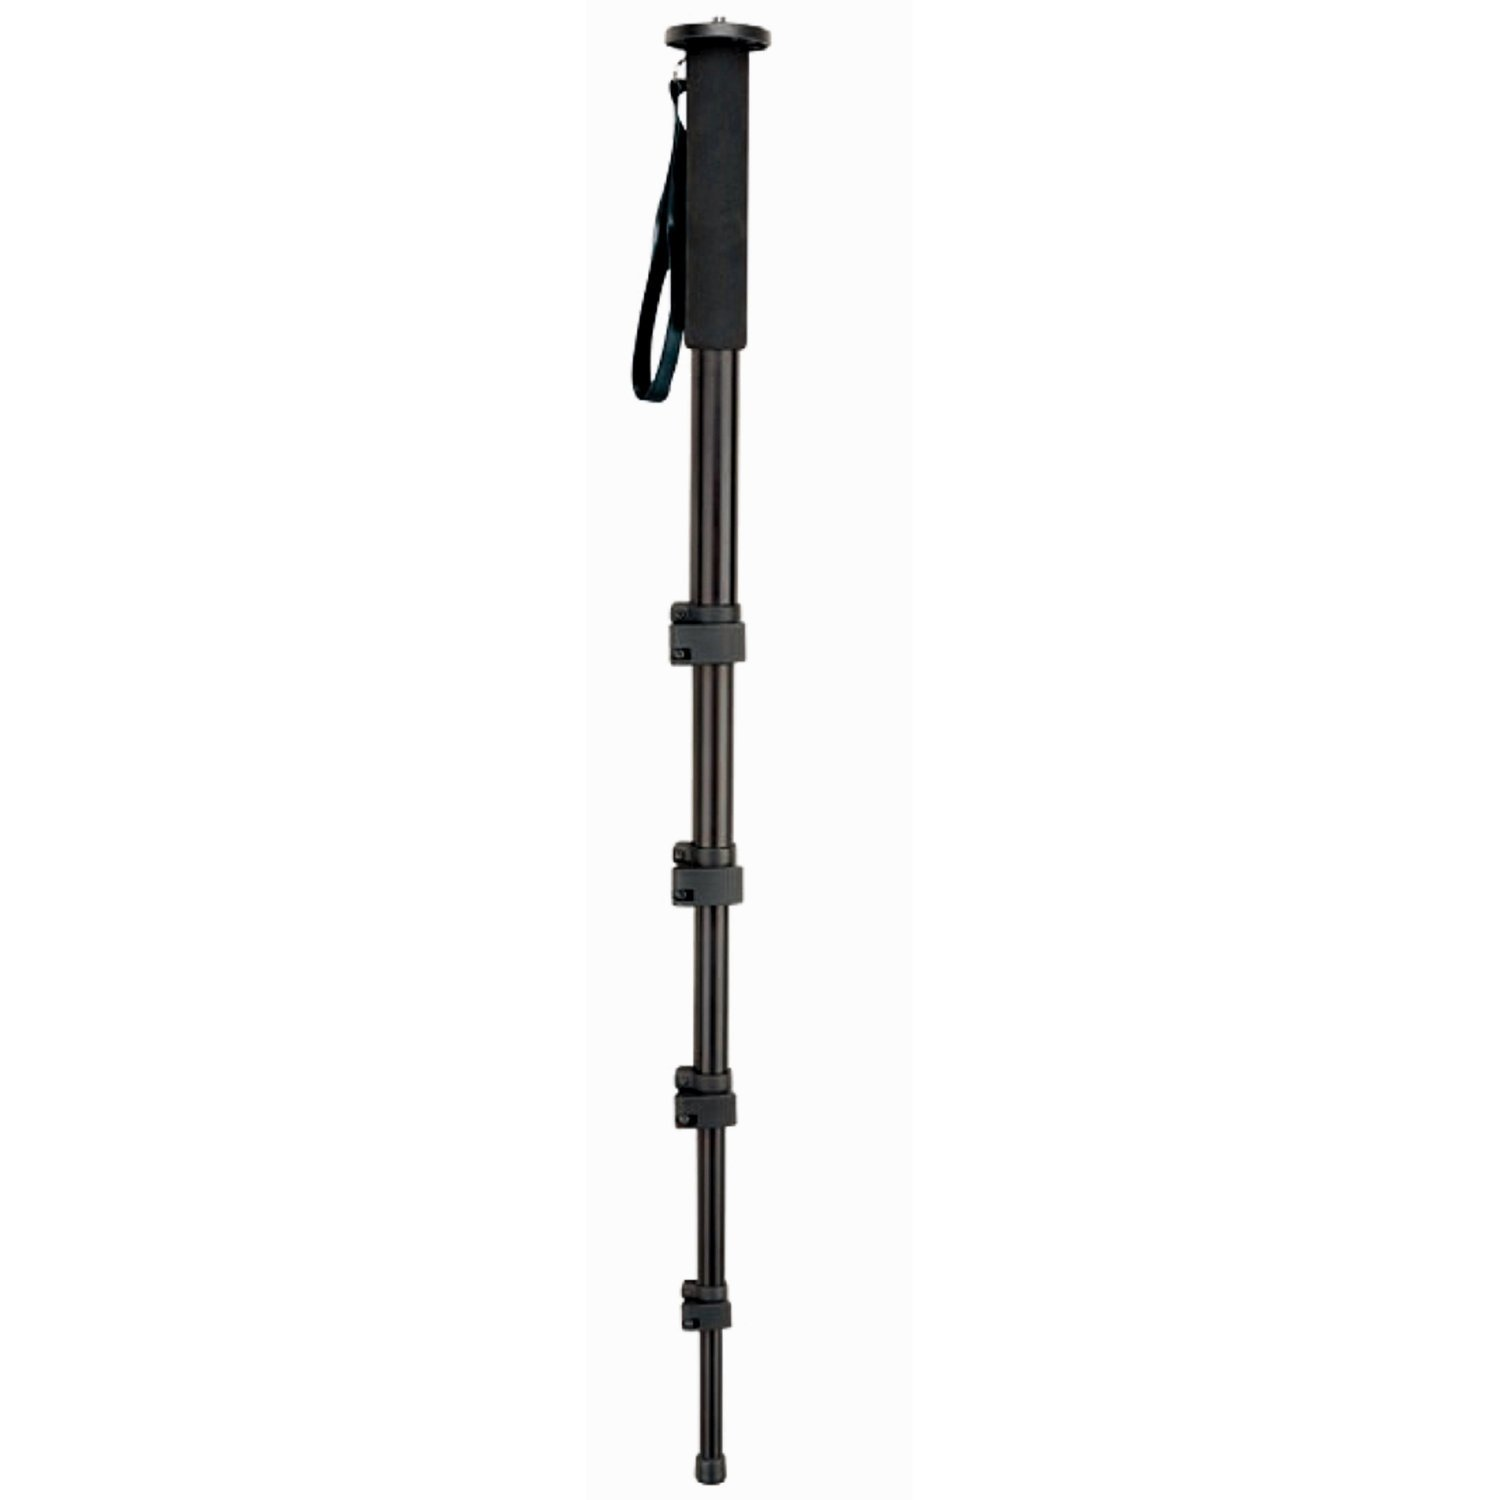 Opteka M900 71'' 5 Section Ultra Heavy Duty Monopod (supports up to 30 lbs)